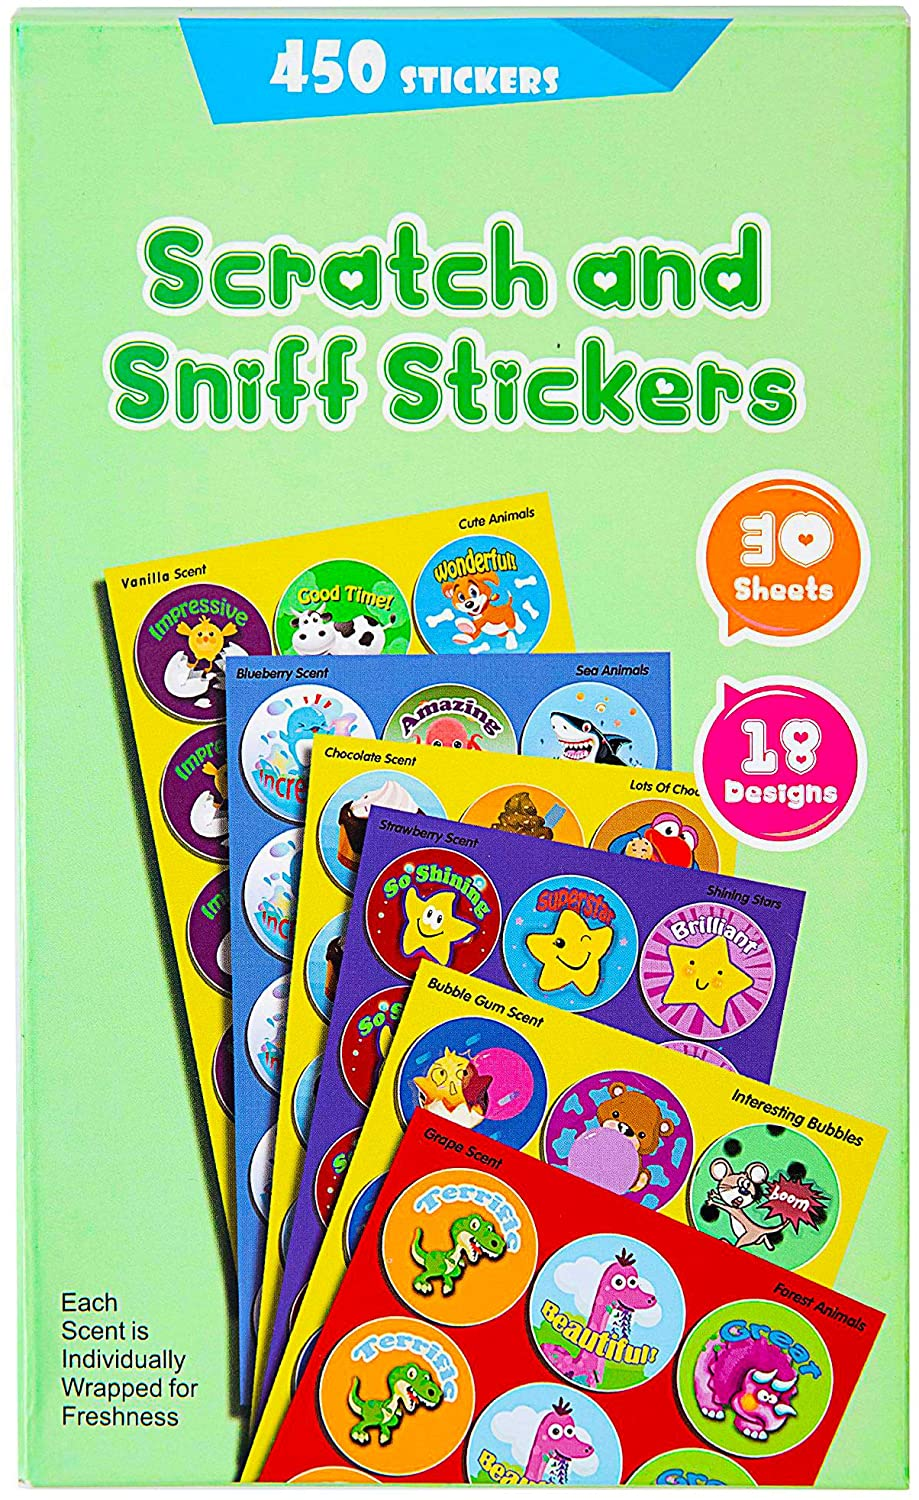 Reward Stickers, 450 Stickers&30 Sheets 6 Different Designs Including Fishes and Animals,Kids&Teachers' Favorite Smelly Stickers,Christmas Stickers!